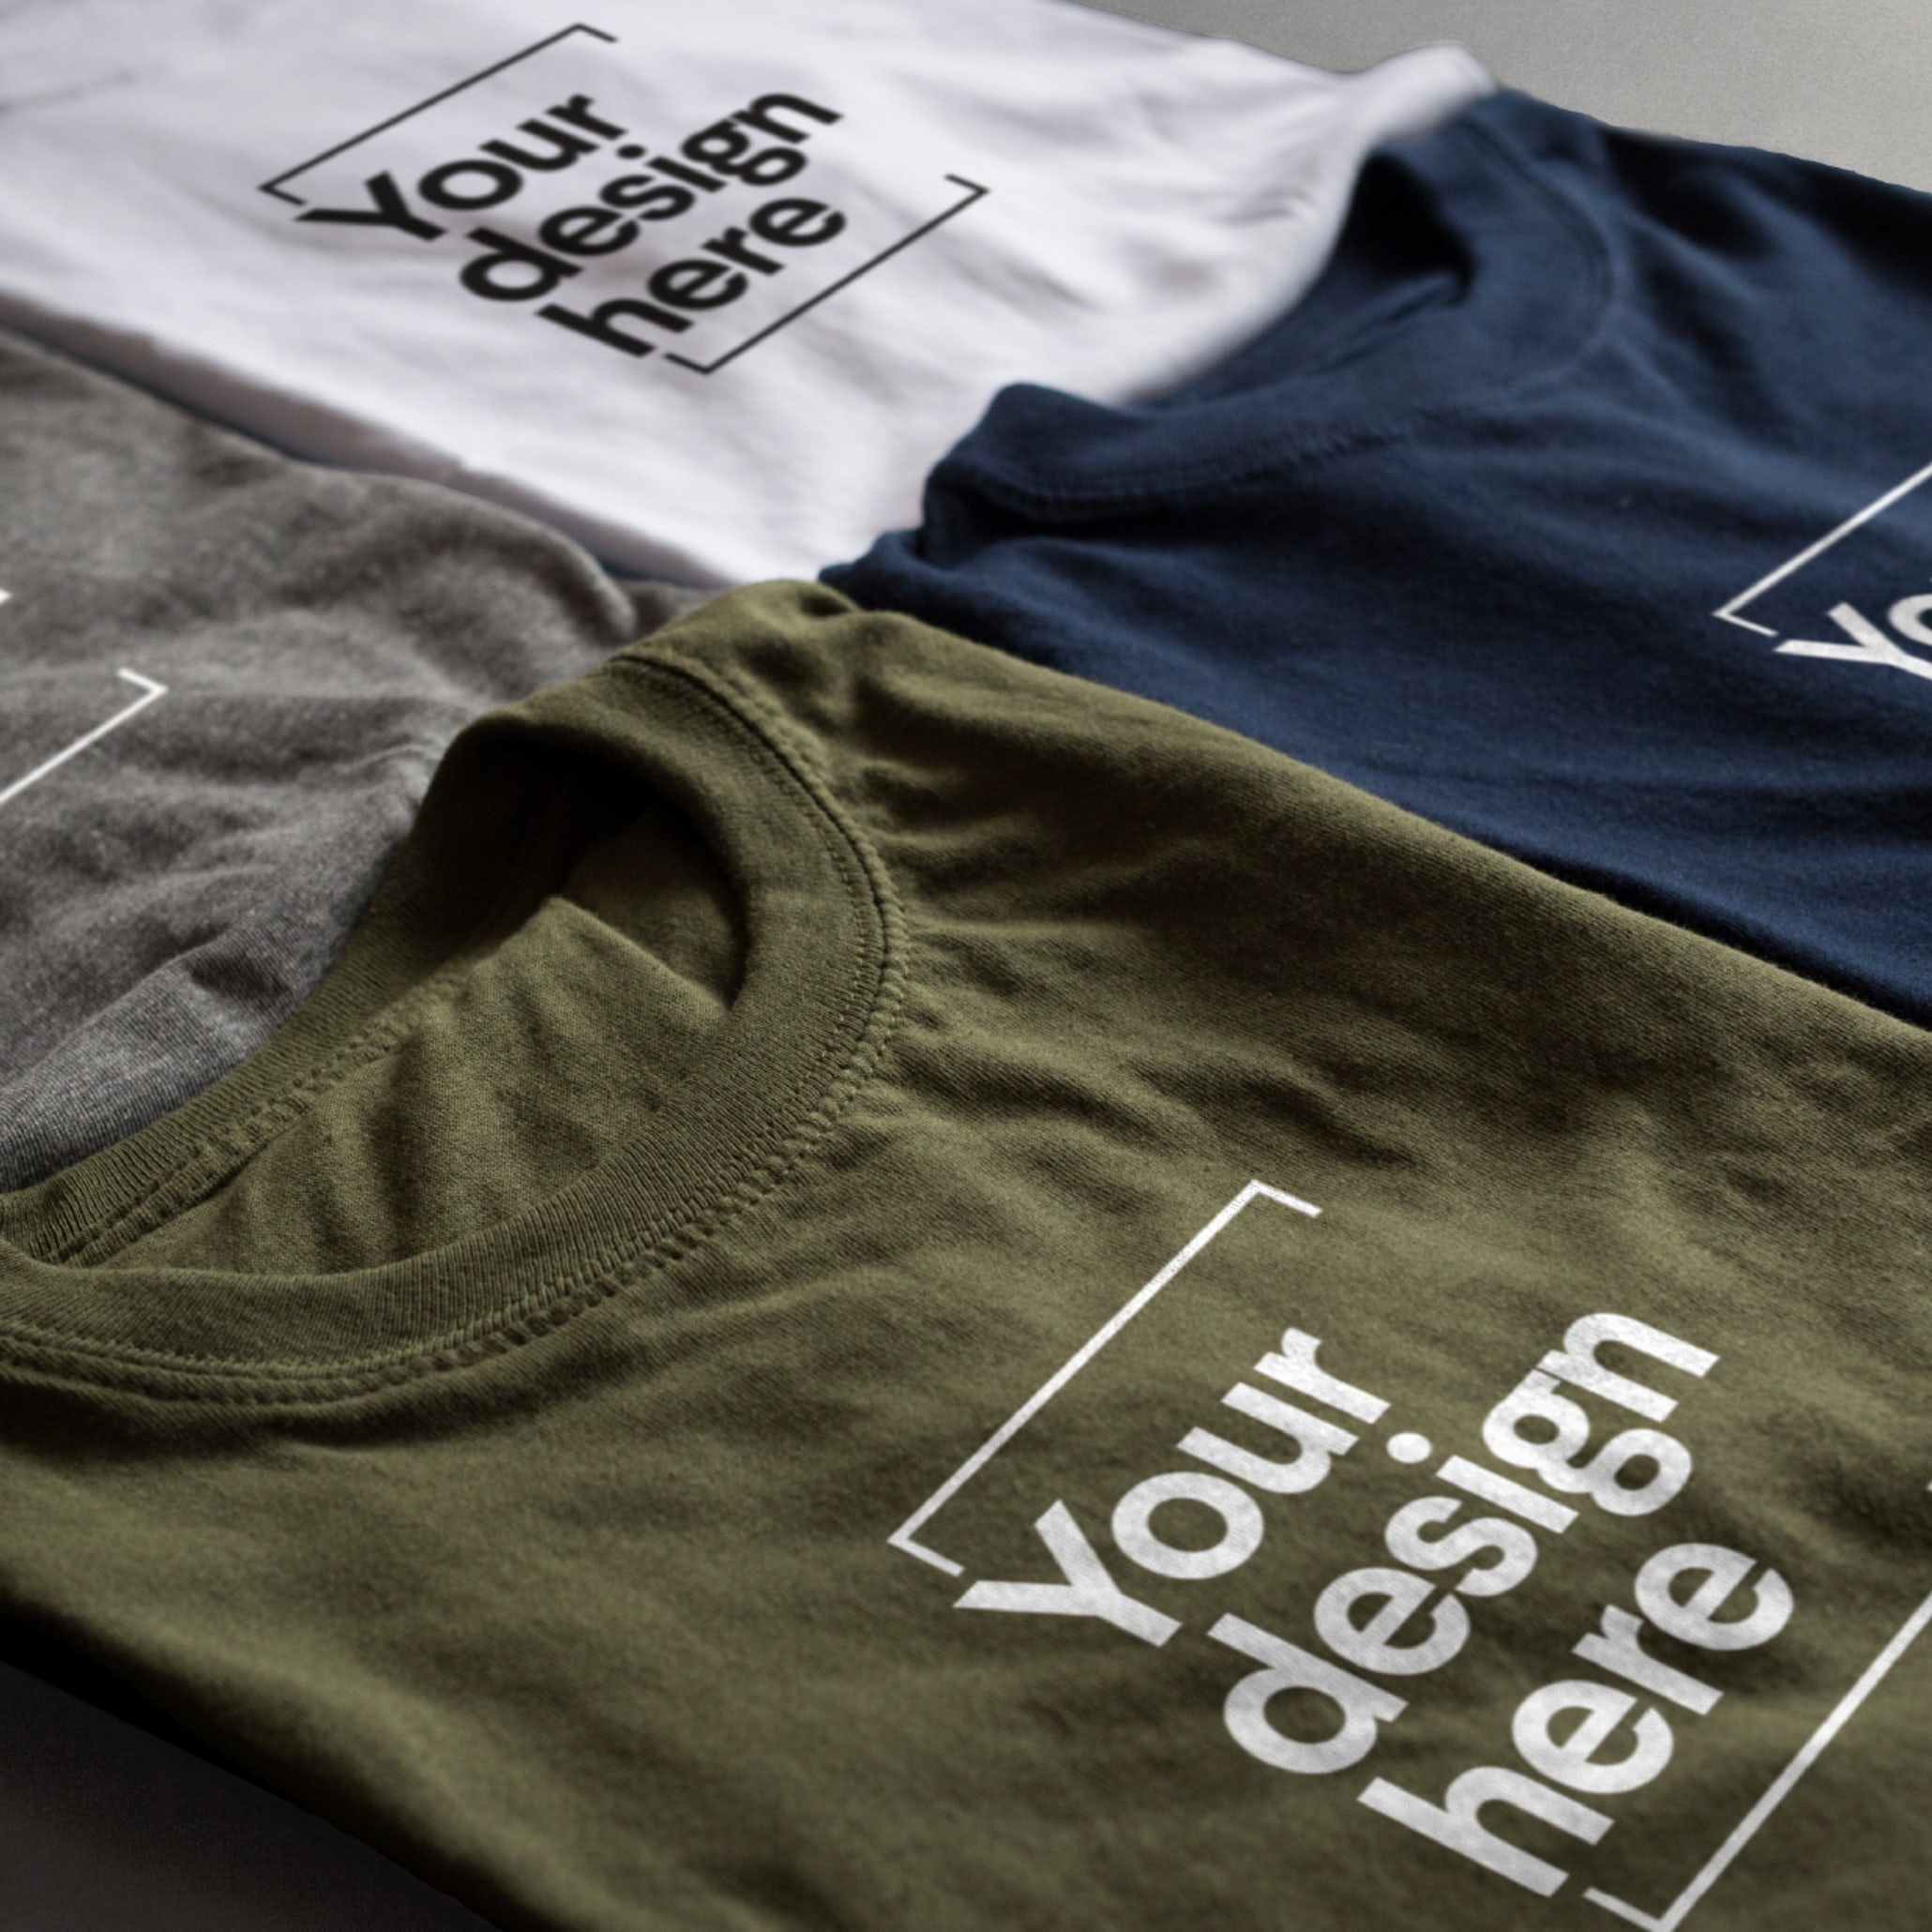 How to design a t-shirt: the ultimate guide - 99designs